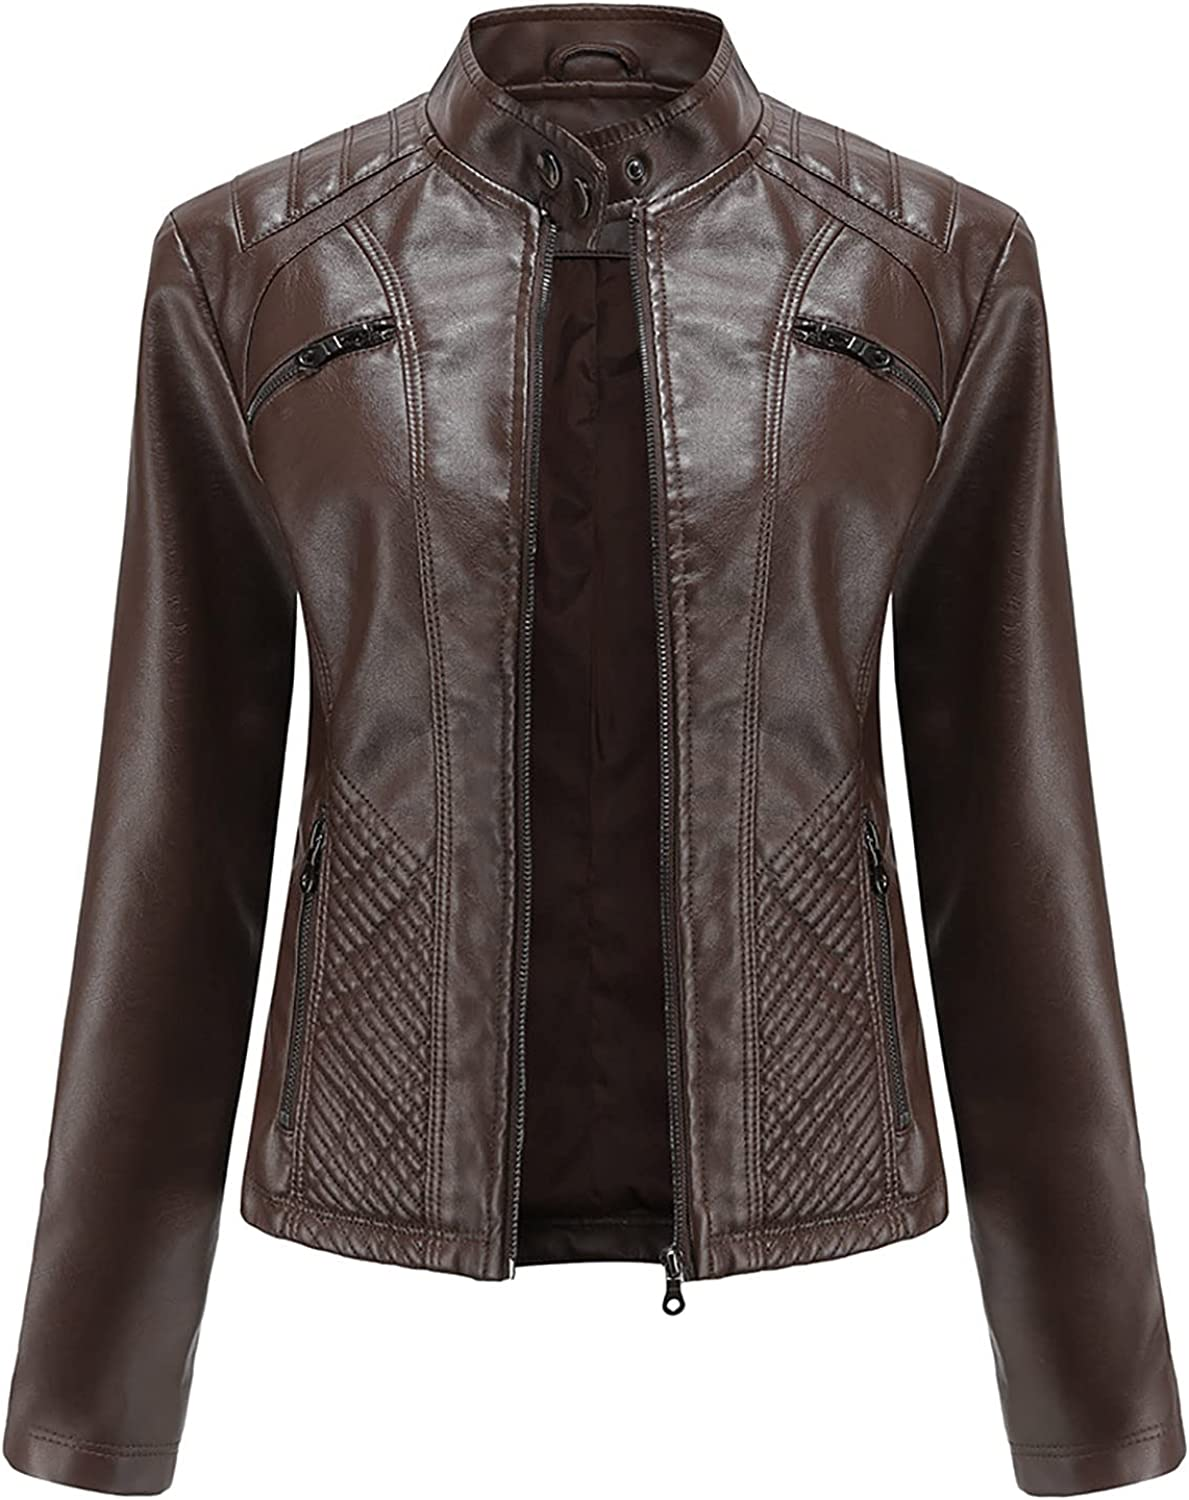 RFNIU Womens Zip Up Faux Leather Jacket Fall And Winter Fashion Motorcycle Coat With Pockets Casual Long Sleeve Tops